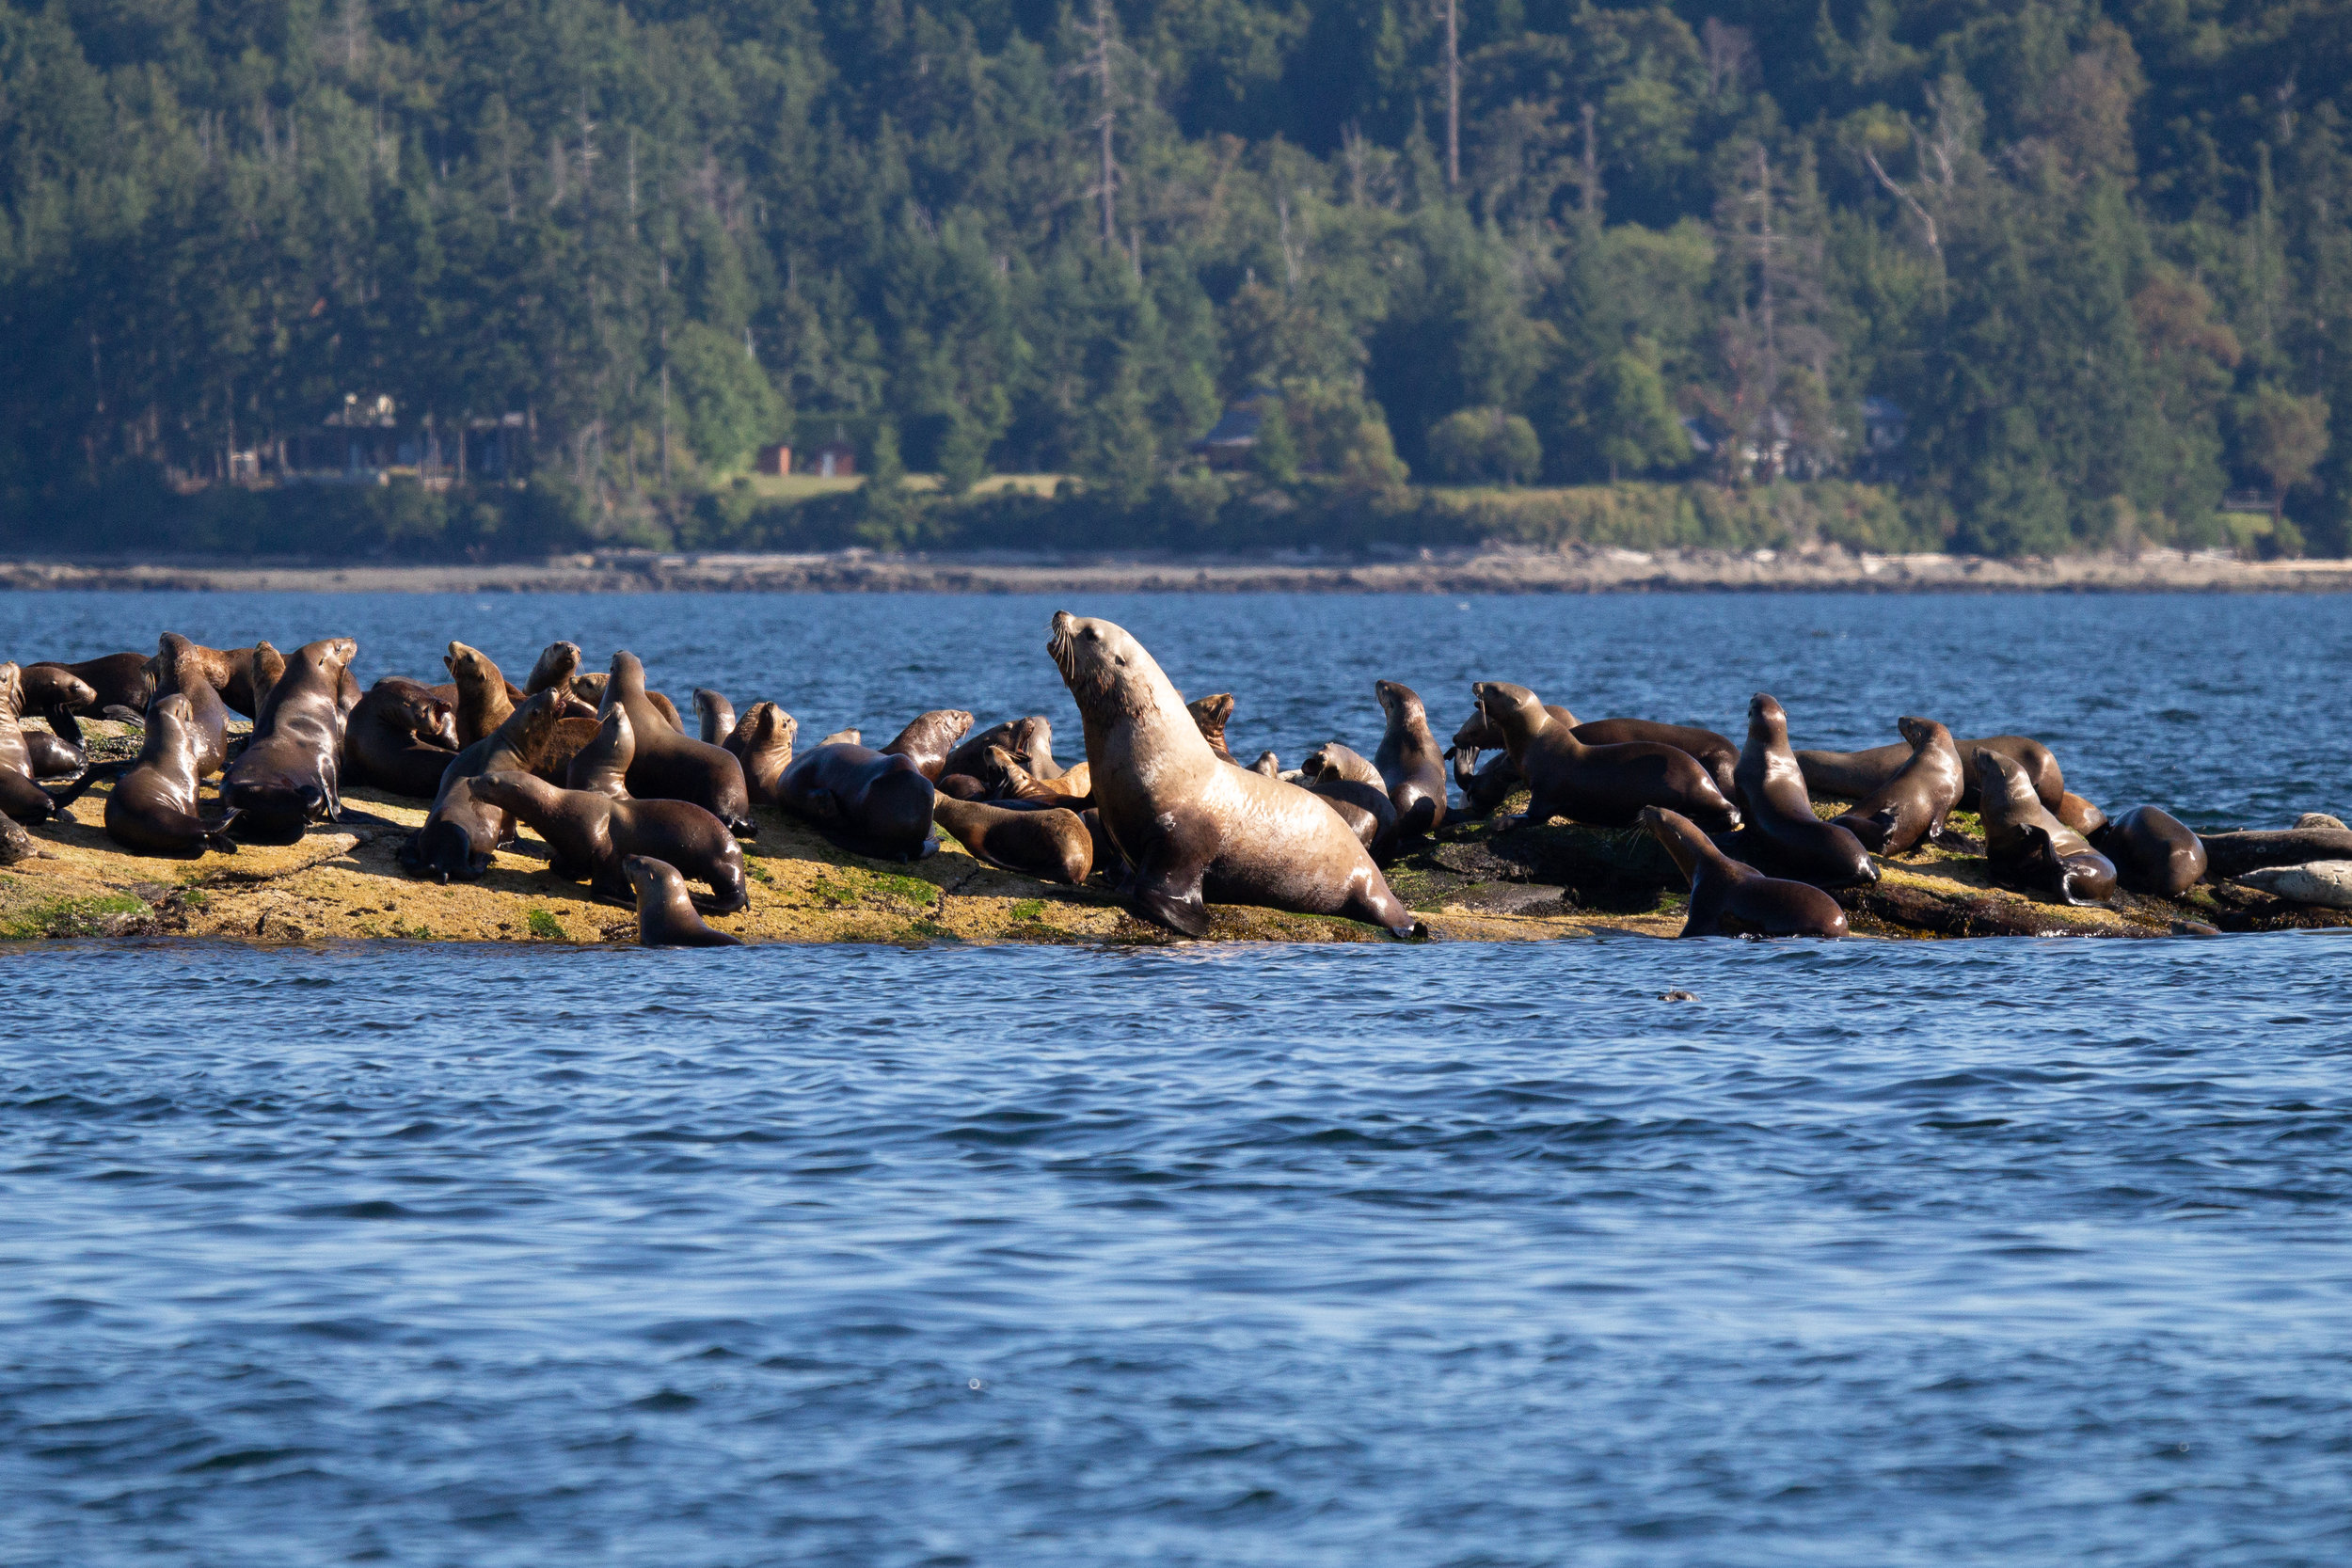 Steller sea lions hauled out on the rocks. Look how big that male is compared to all the others surrounding him! Photo by Natalie Reichenbacher